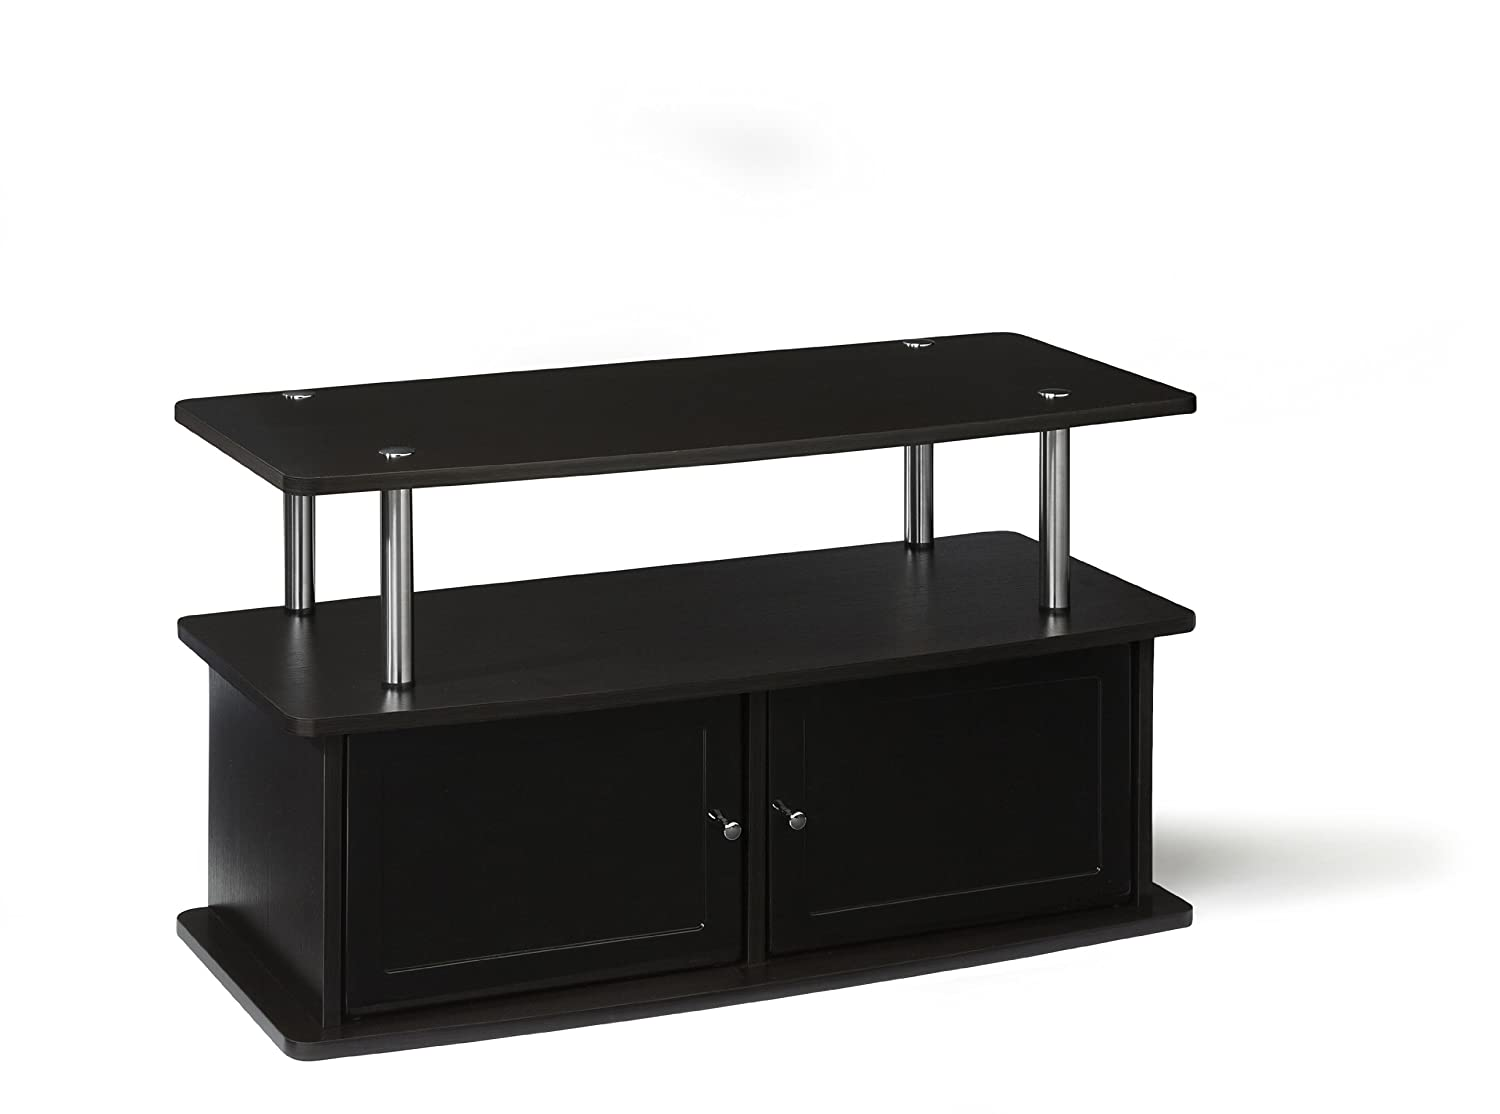 Convenience Concepts Designs2Go TV Stand with 2 Cabinets for Flat Panel TV s Up to 36-Inch or 80-Pound, Dark Espresso